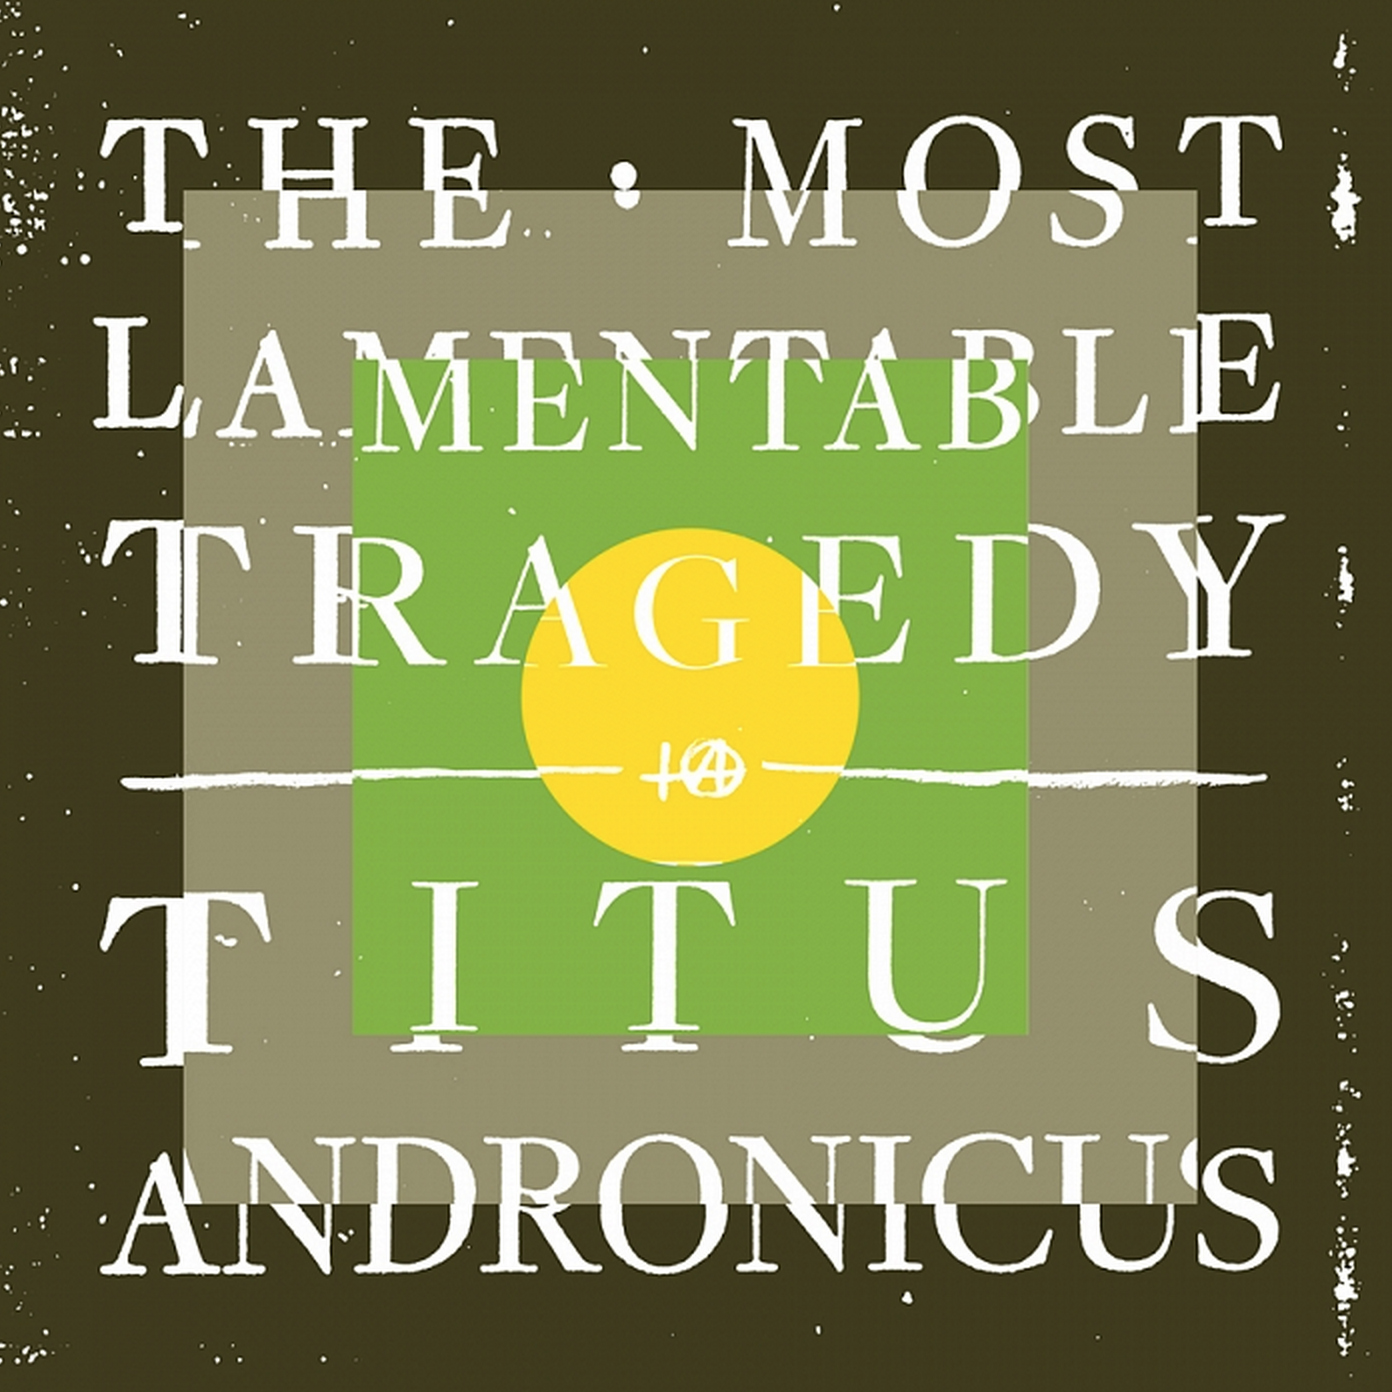 The Most Lamentable Tragedy